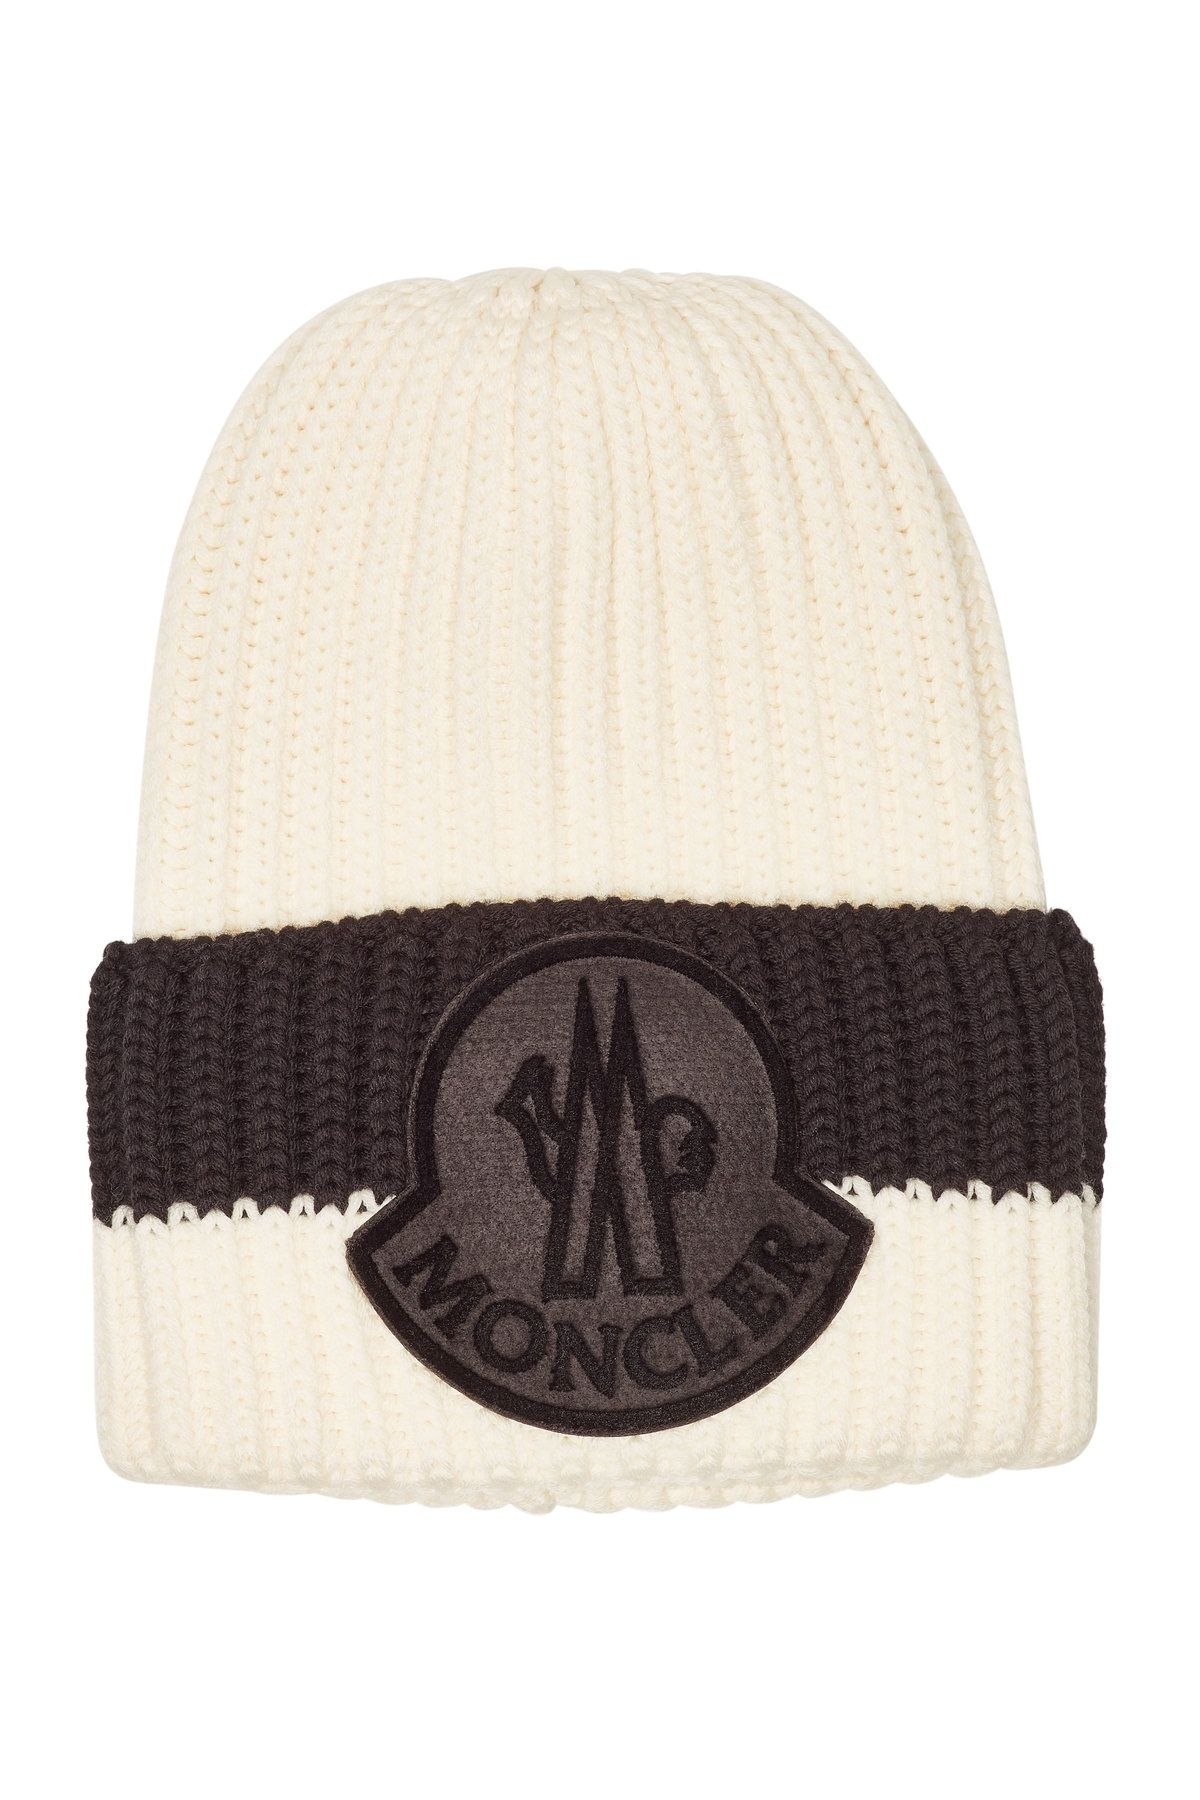 db18f13246 MONCLER VIRGIN WOOL HAT. #moncler | Moncler in 2019 | Hats, Knitted ...